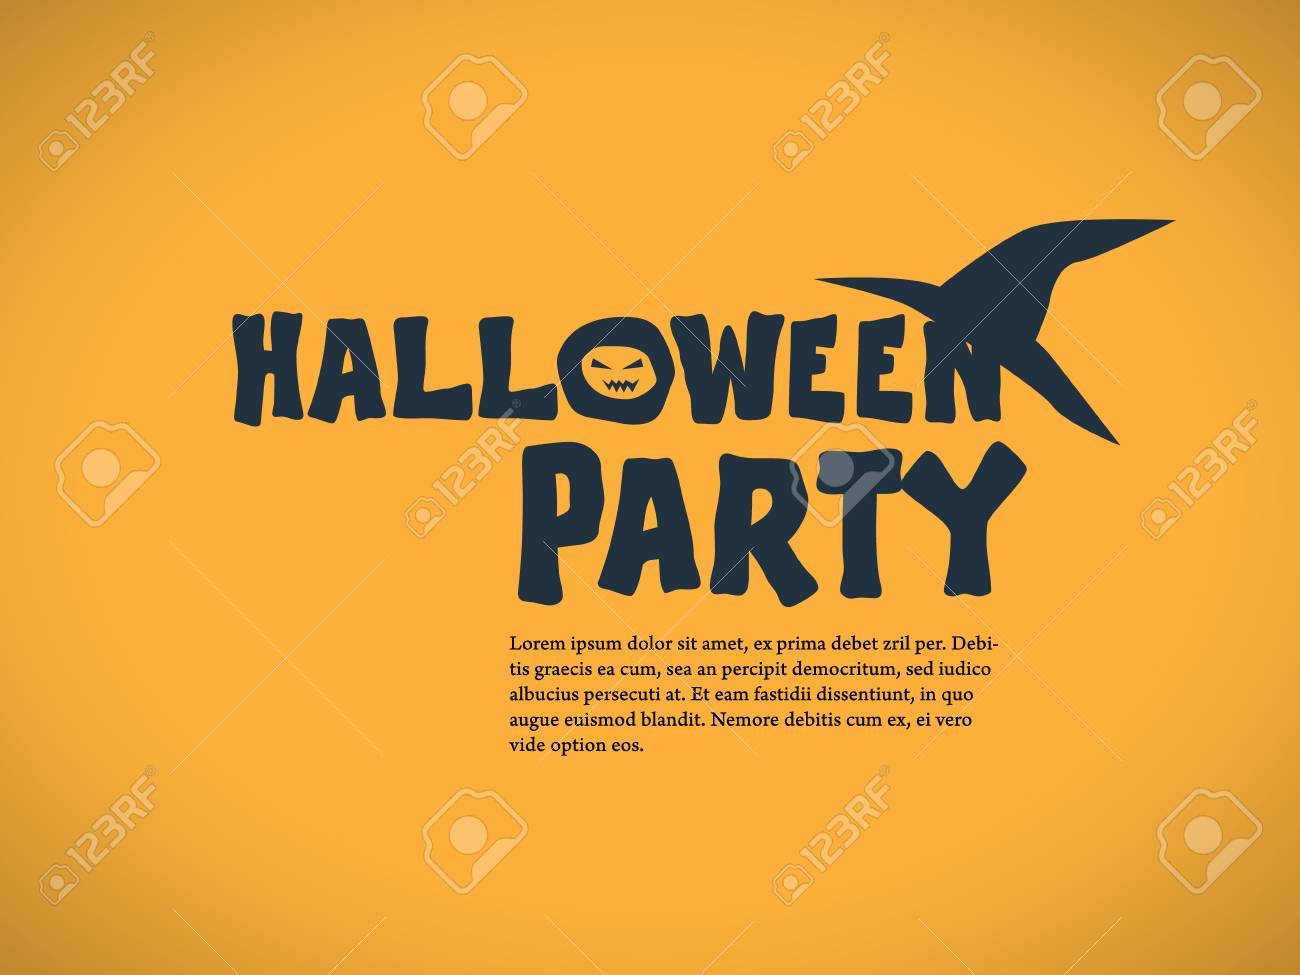 Halloween Party Invitation Template Holiday Celebration Poster Or Card Elegant Typography With Traditional Symbols